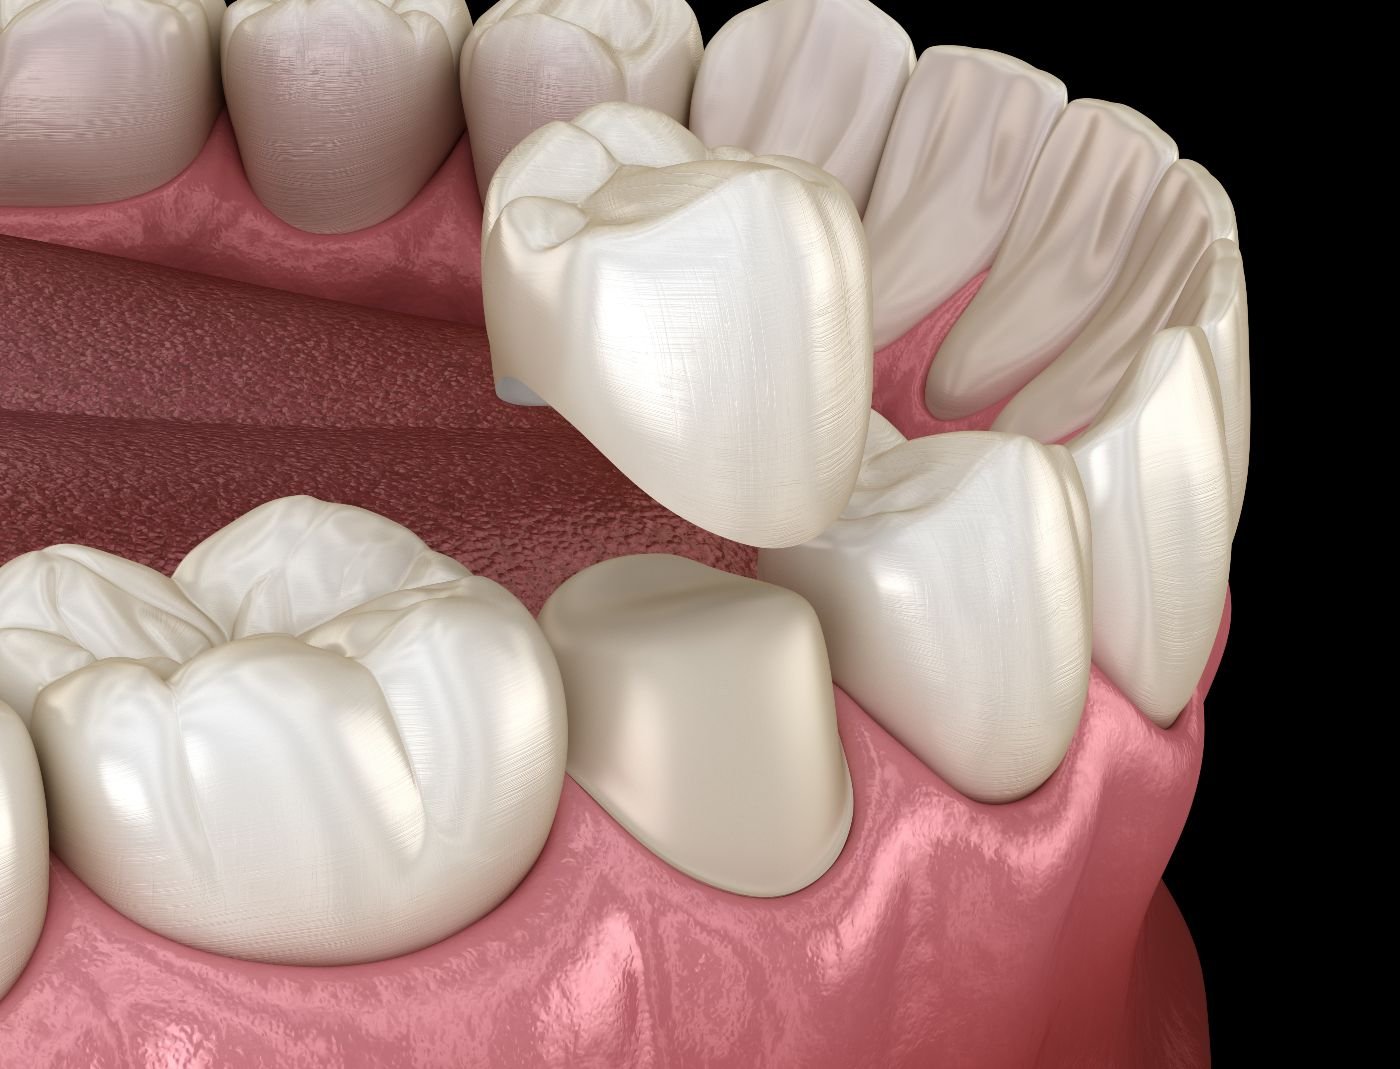 Why Crowns are Advised After Root Canal?